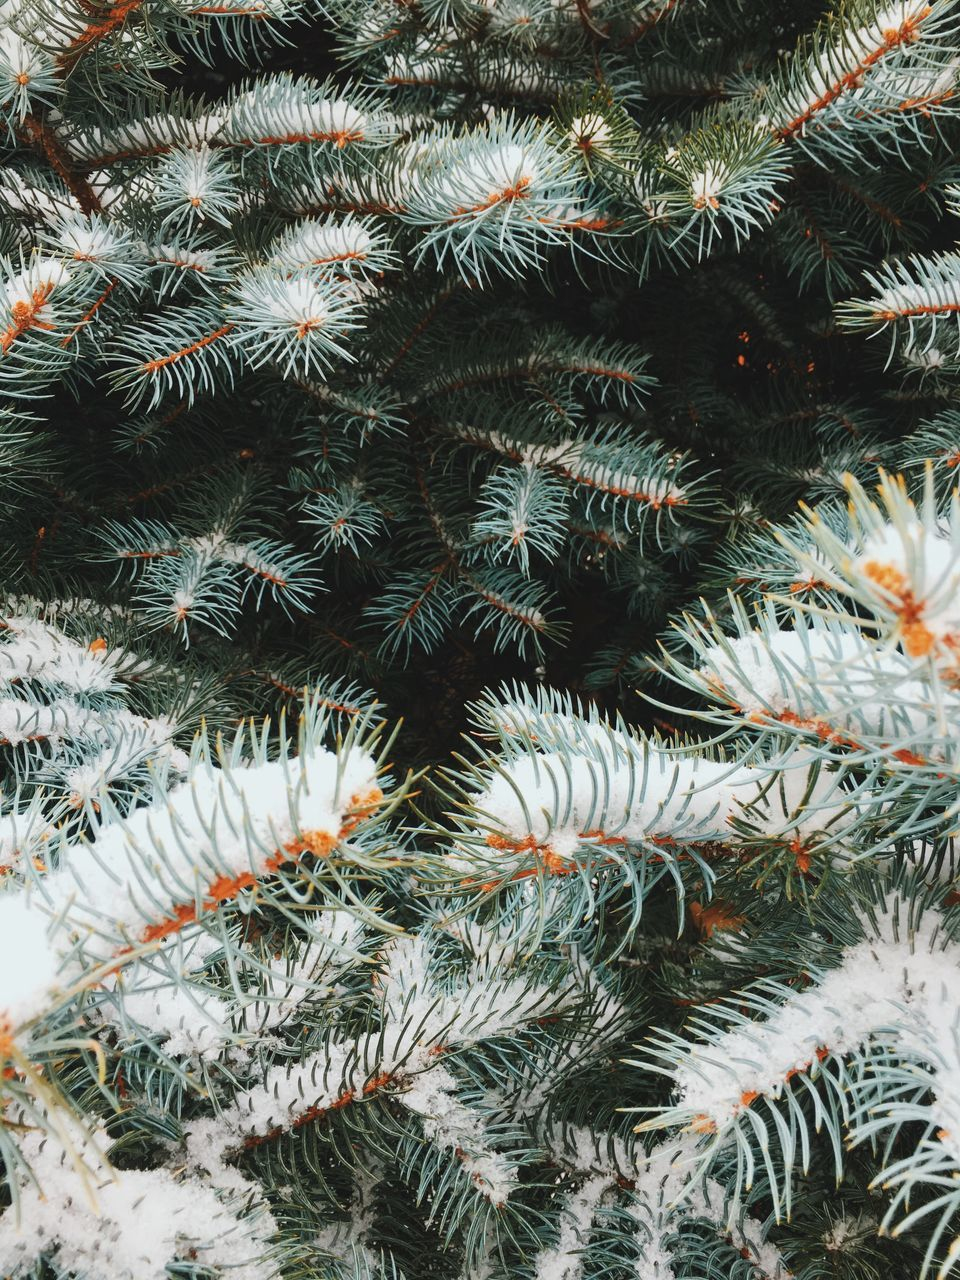 nature, close-up, growth, no people, cactus, outdoors, high angle view, day, full frame, needle - plant part, green color, backgrounds, christmas tree, beauty in nature, snow, plant, cold temperature, needle, winter, christmas decoration